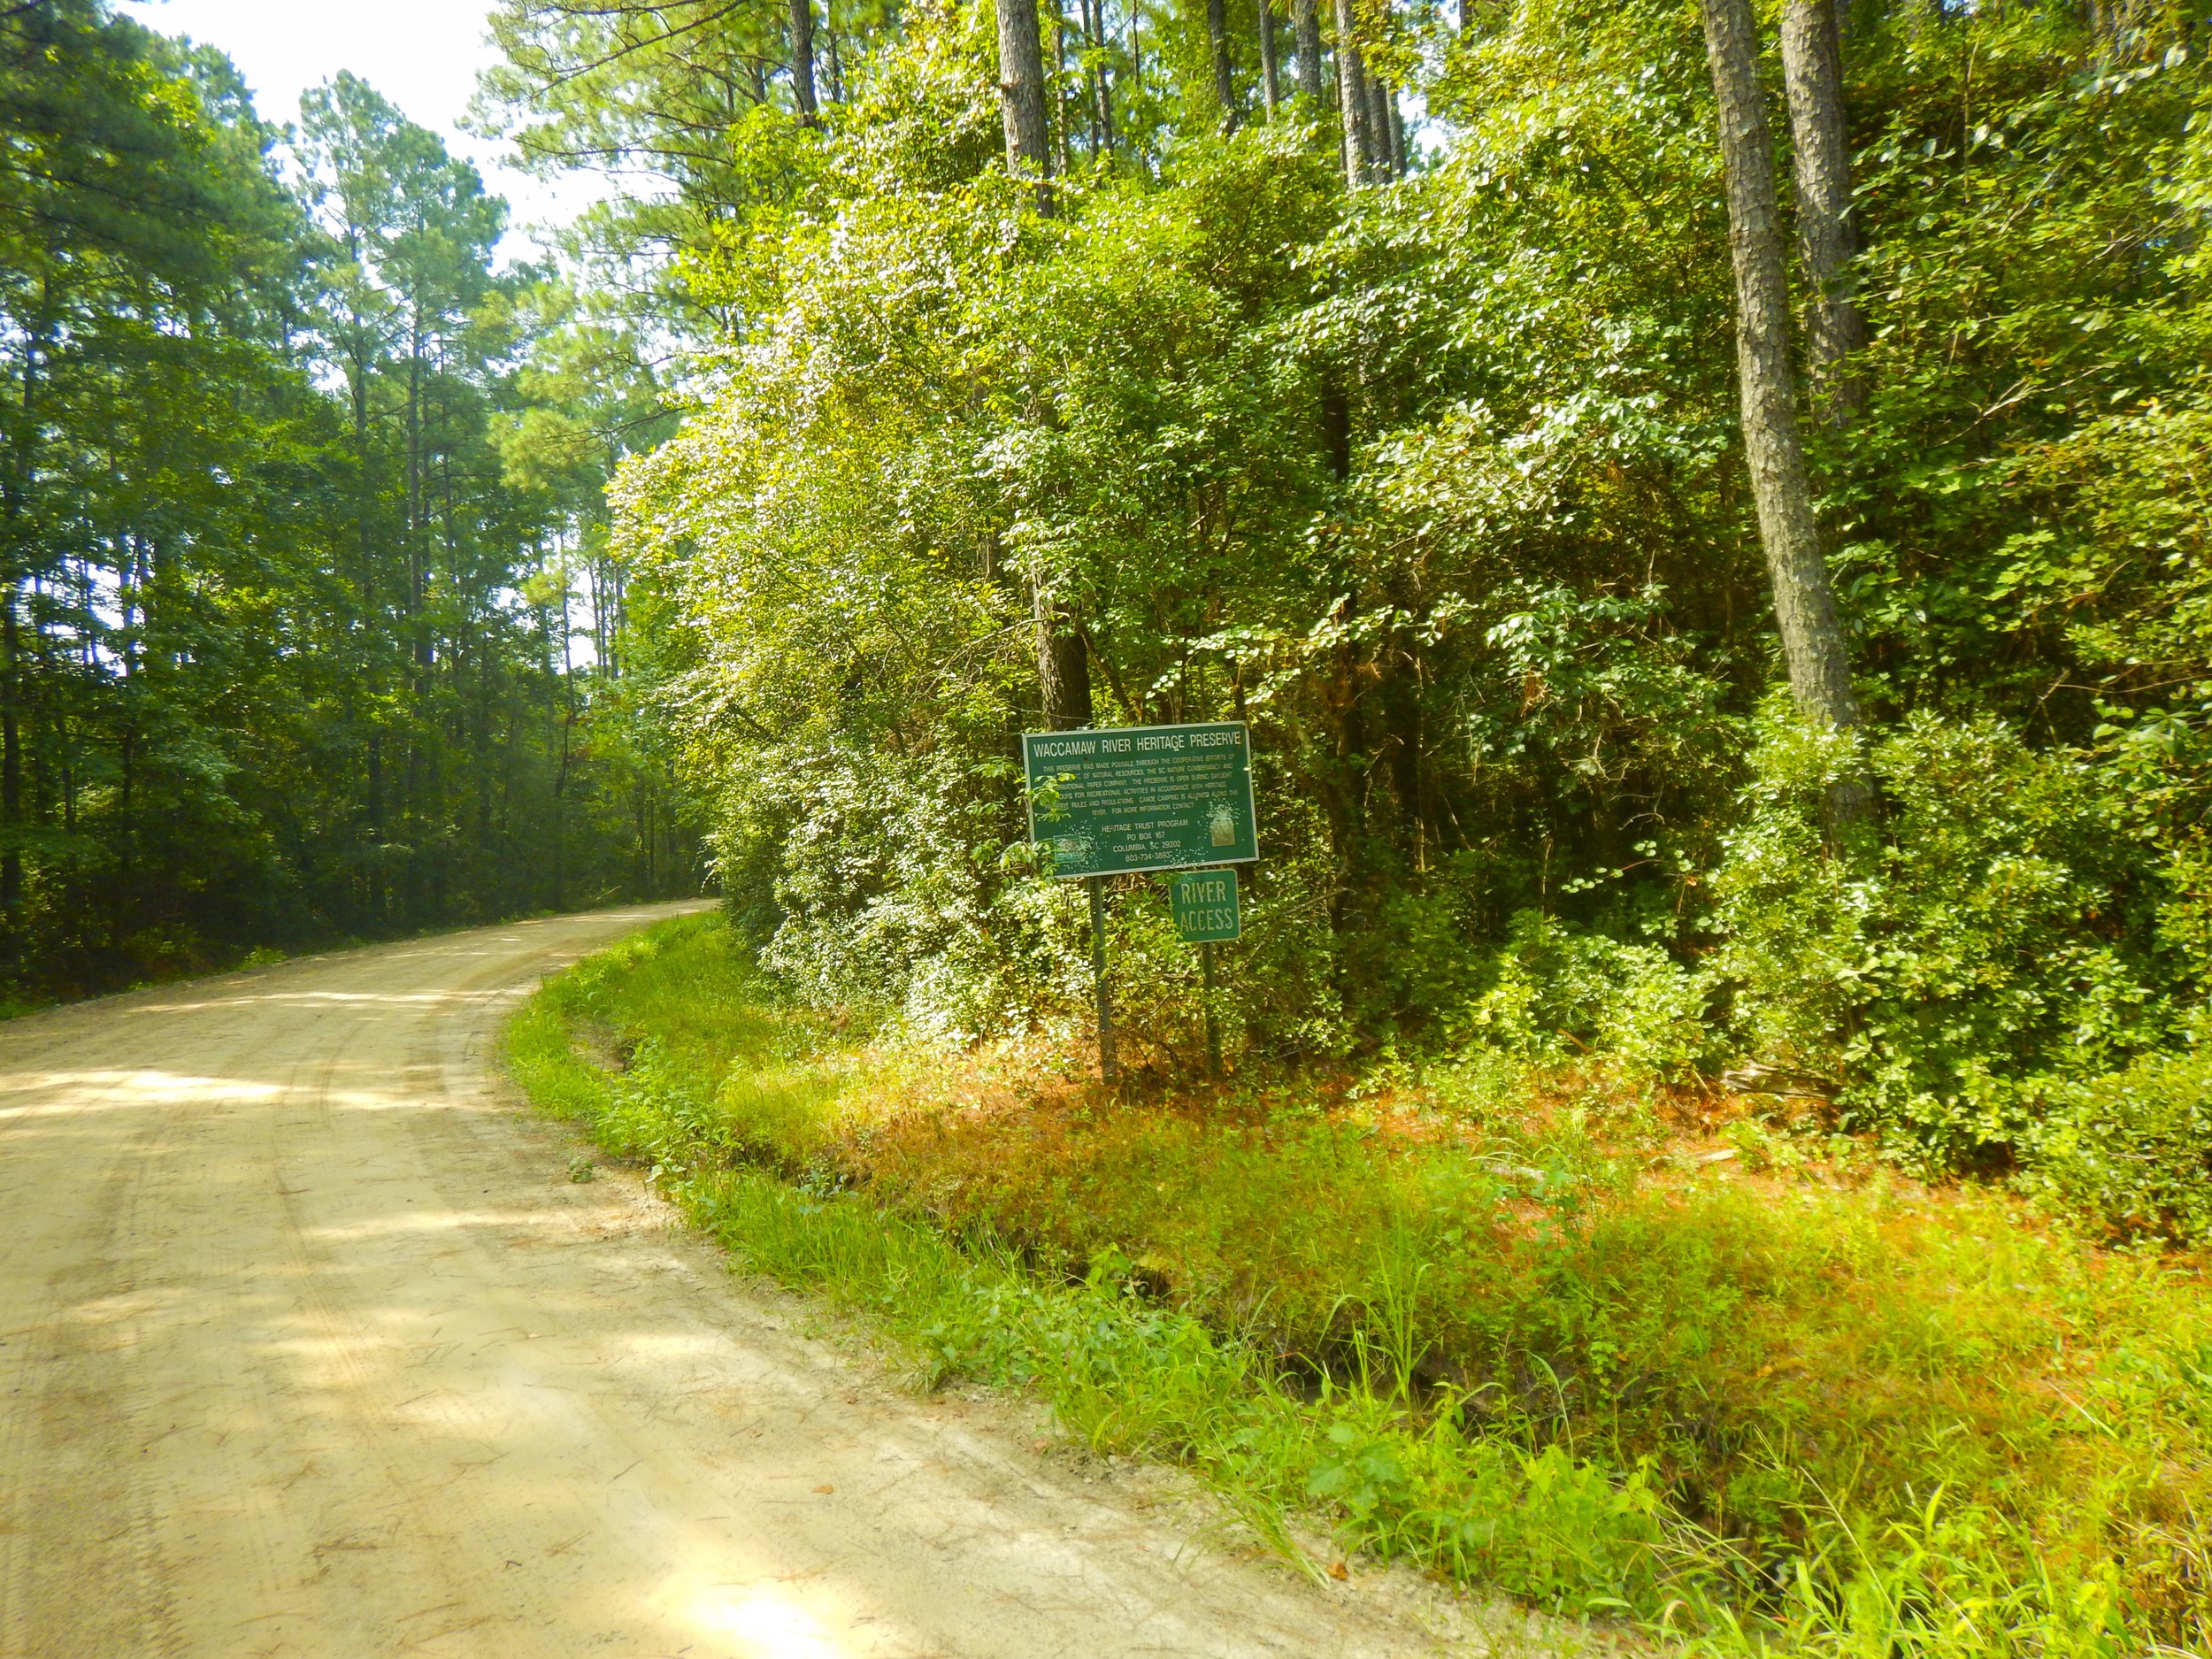 This dirt Lane off of Loop Road will take you to the Big Savannah Bluff throw-in Landing, located on an ox-bow of the Waccamaw River.